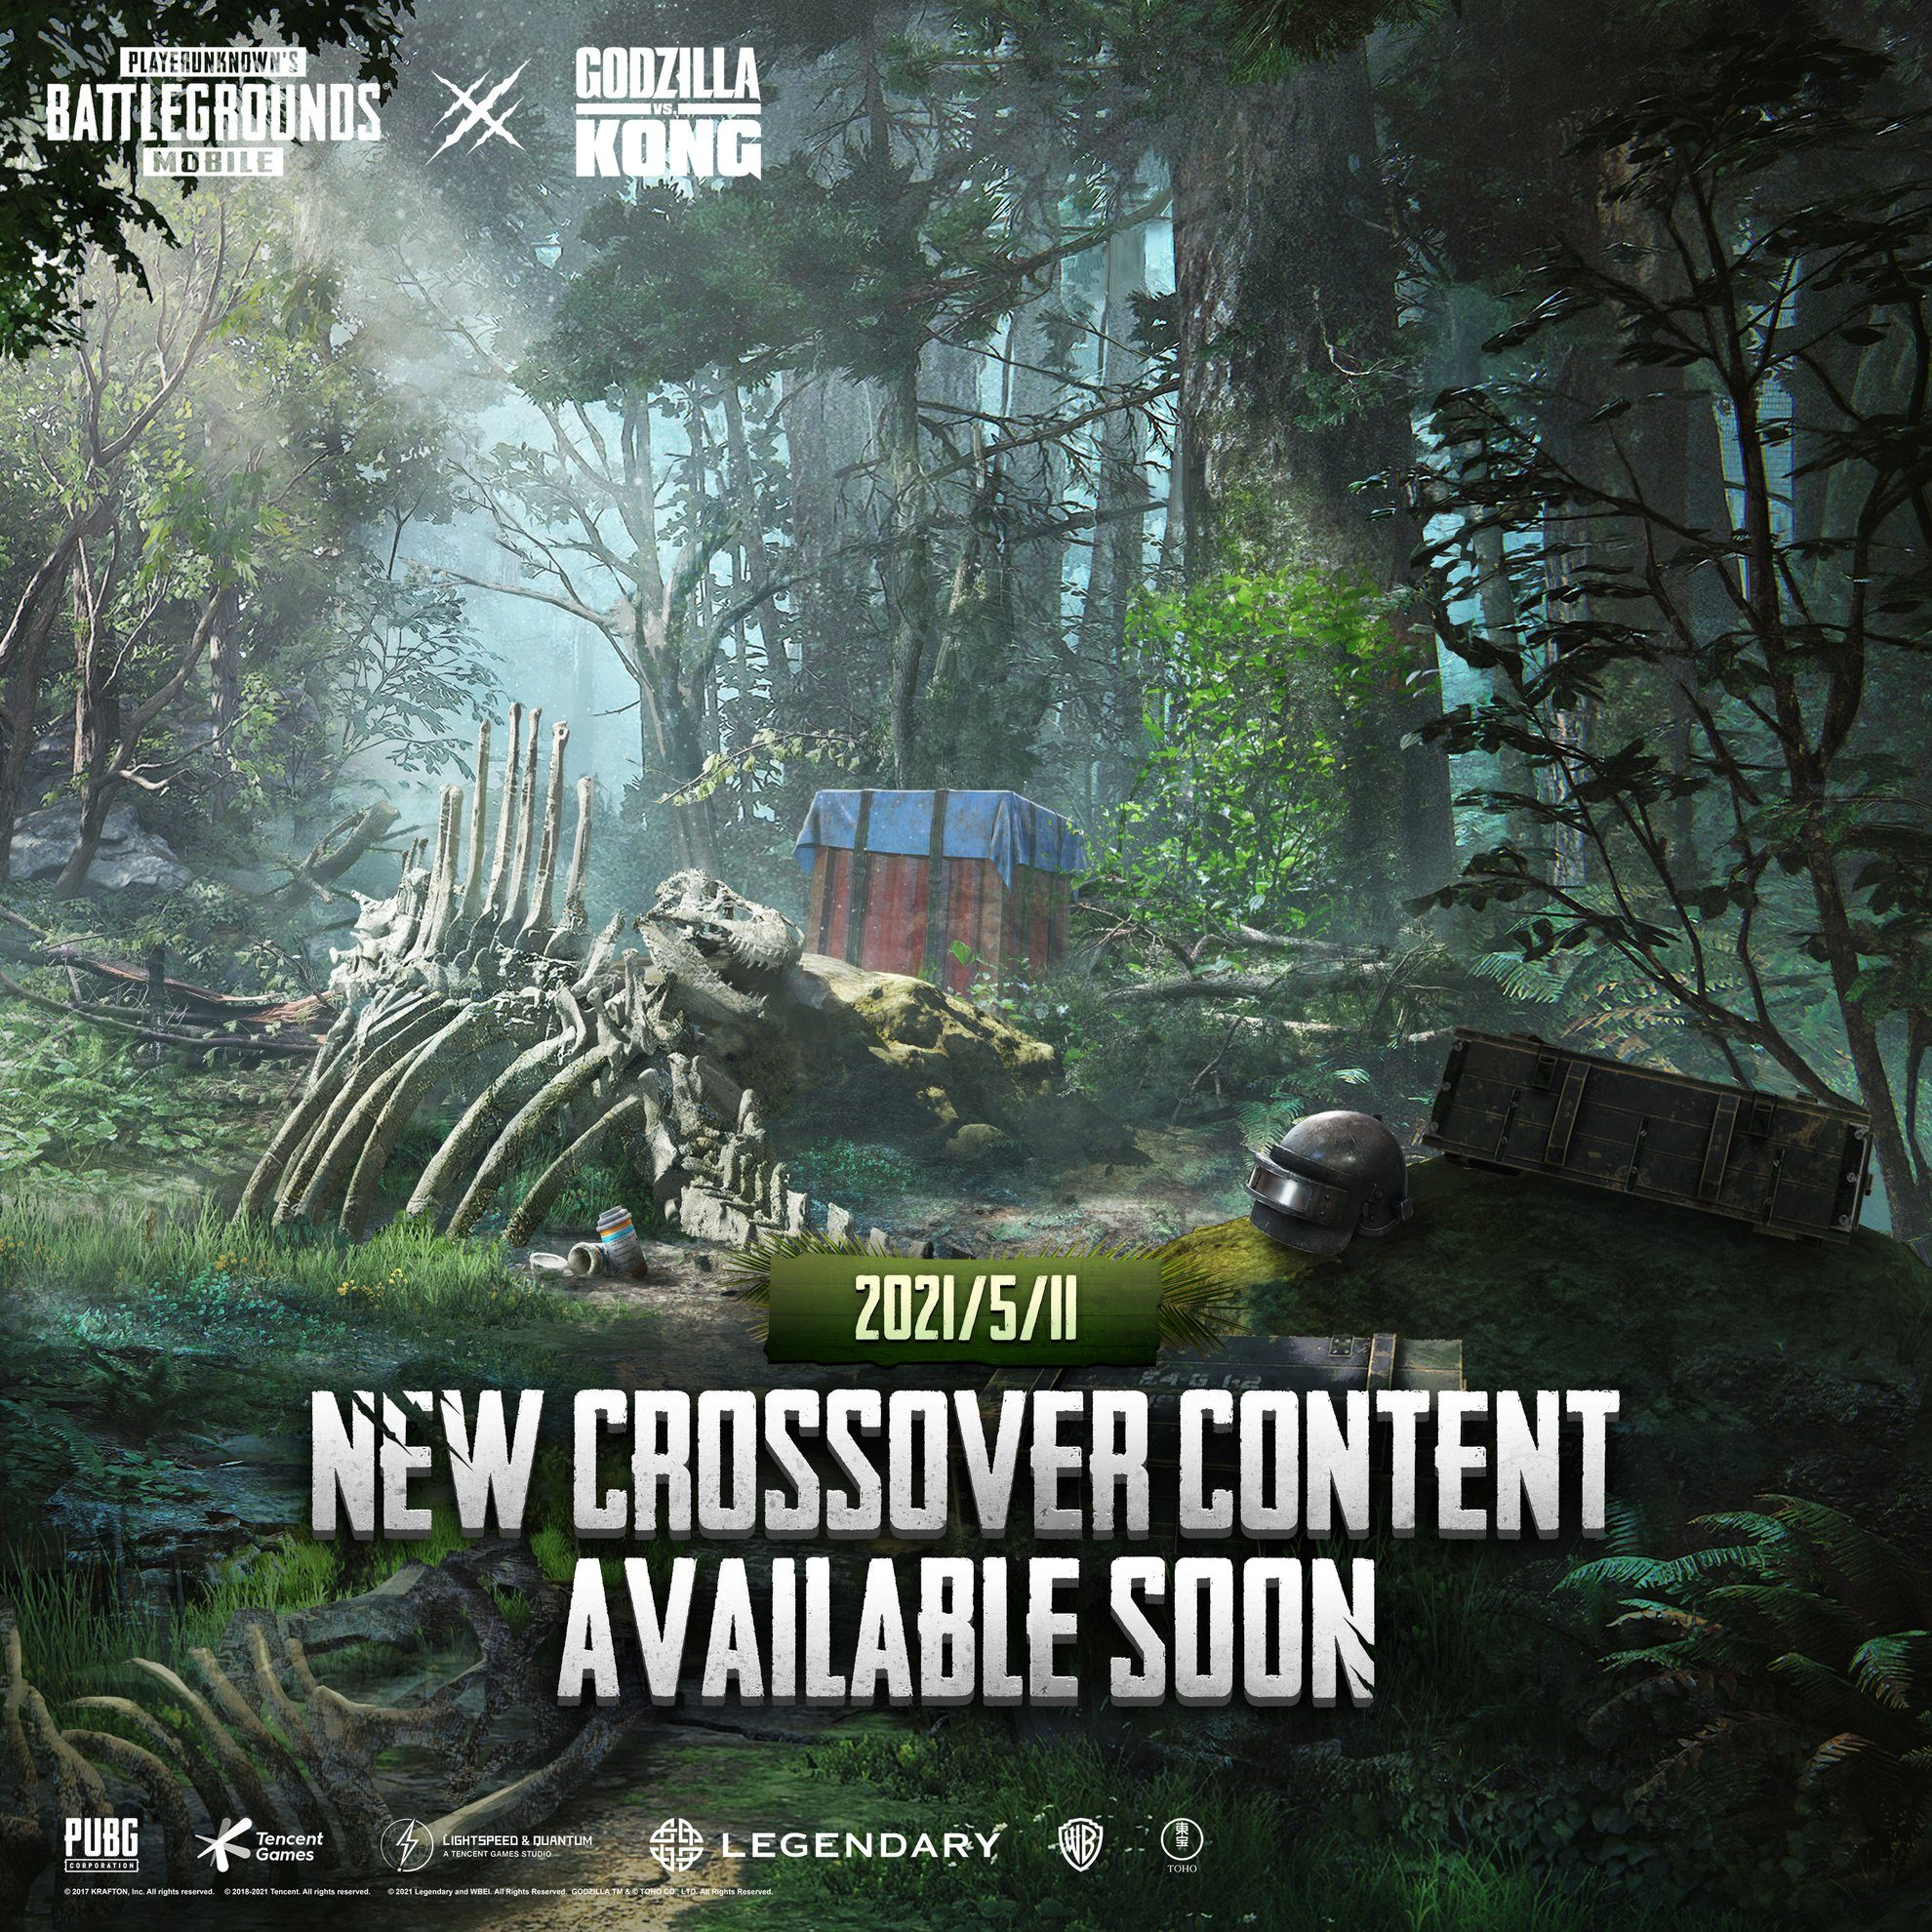 PUBG Mobile Tease Reveals New Content From Godzilla Vs Kong Crossover